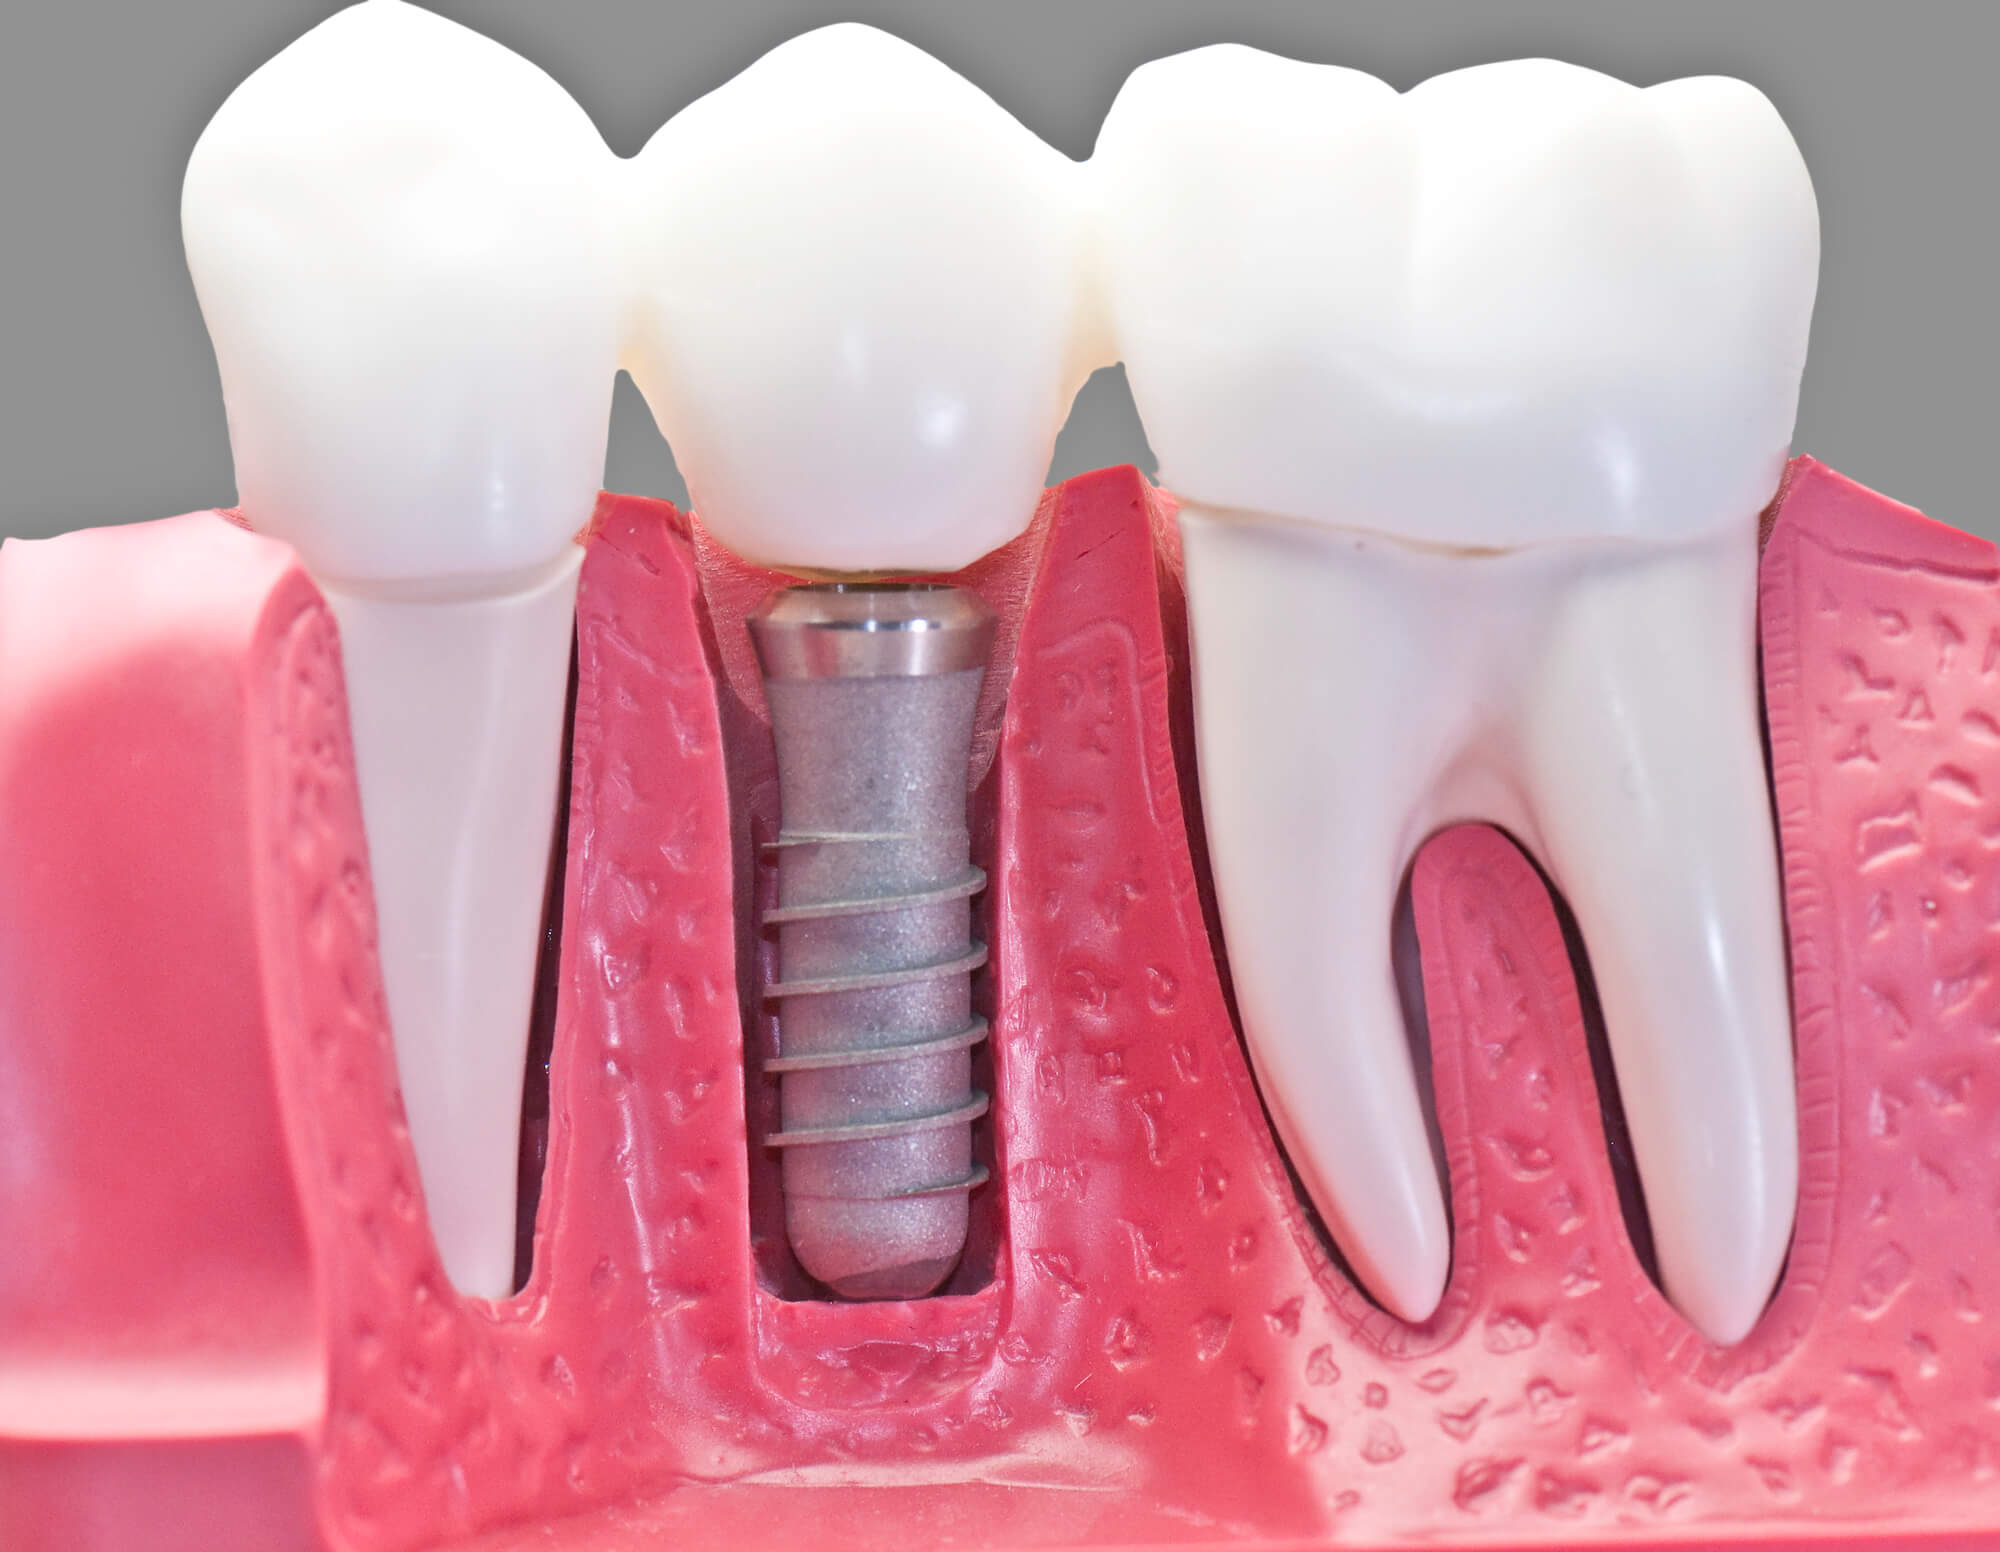 Where can I get Dental Implants Palm Beach Gardens?